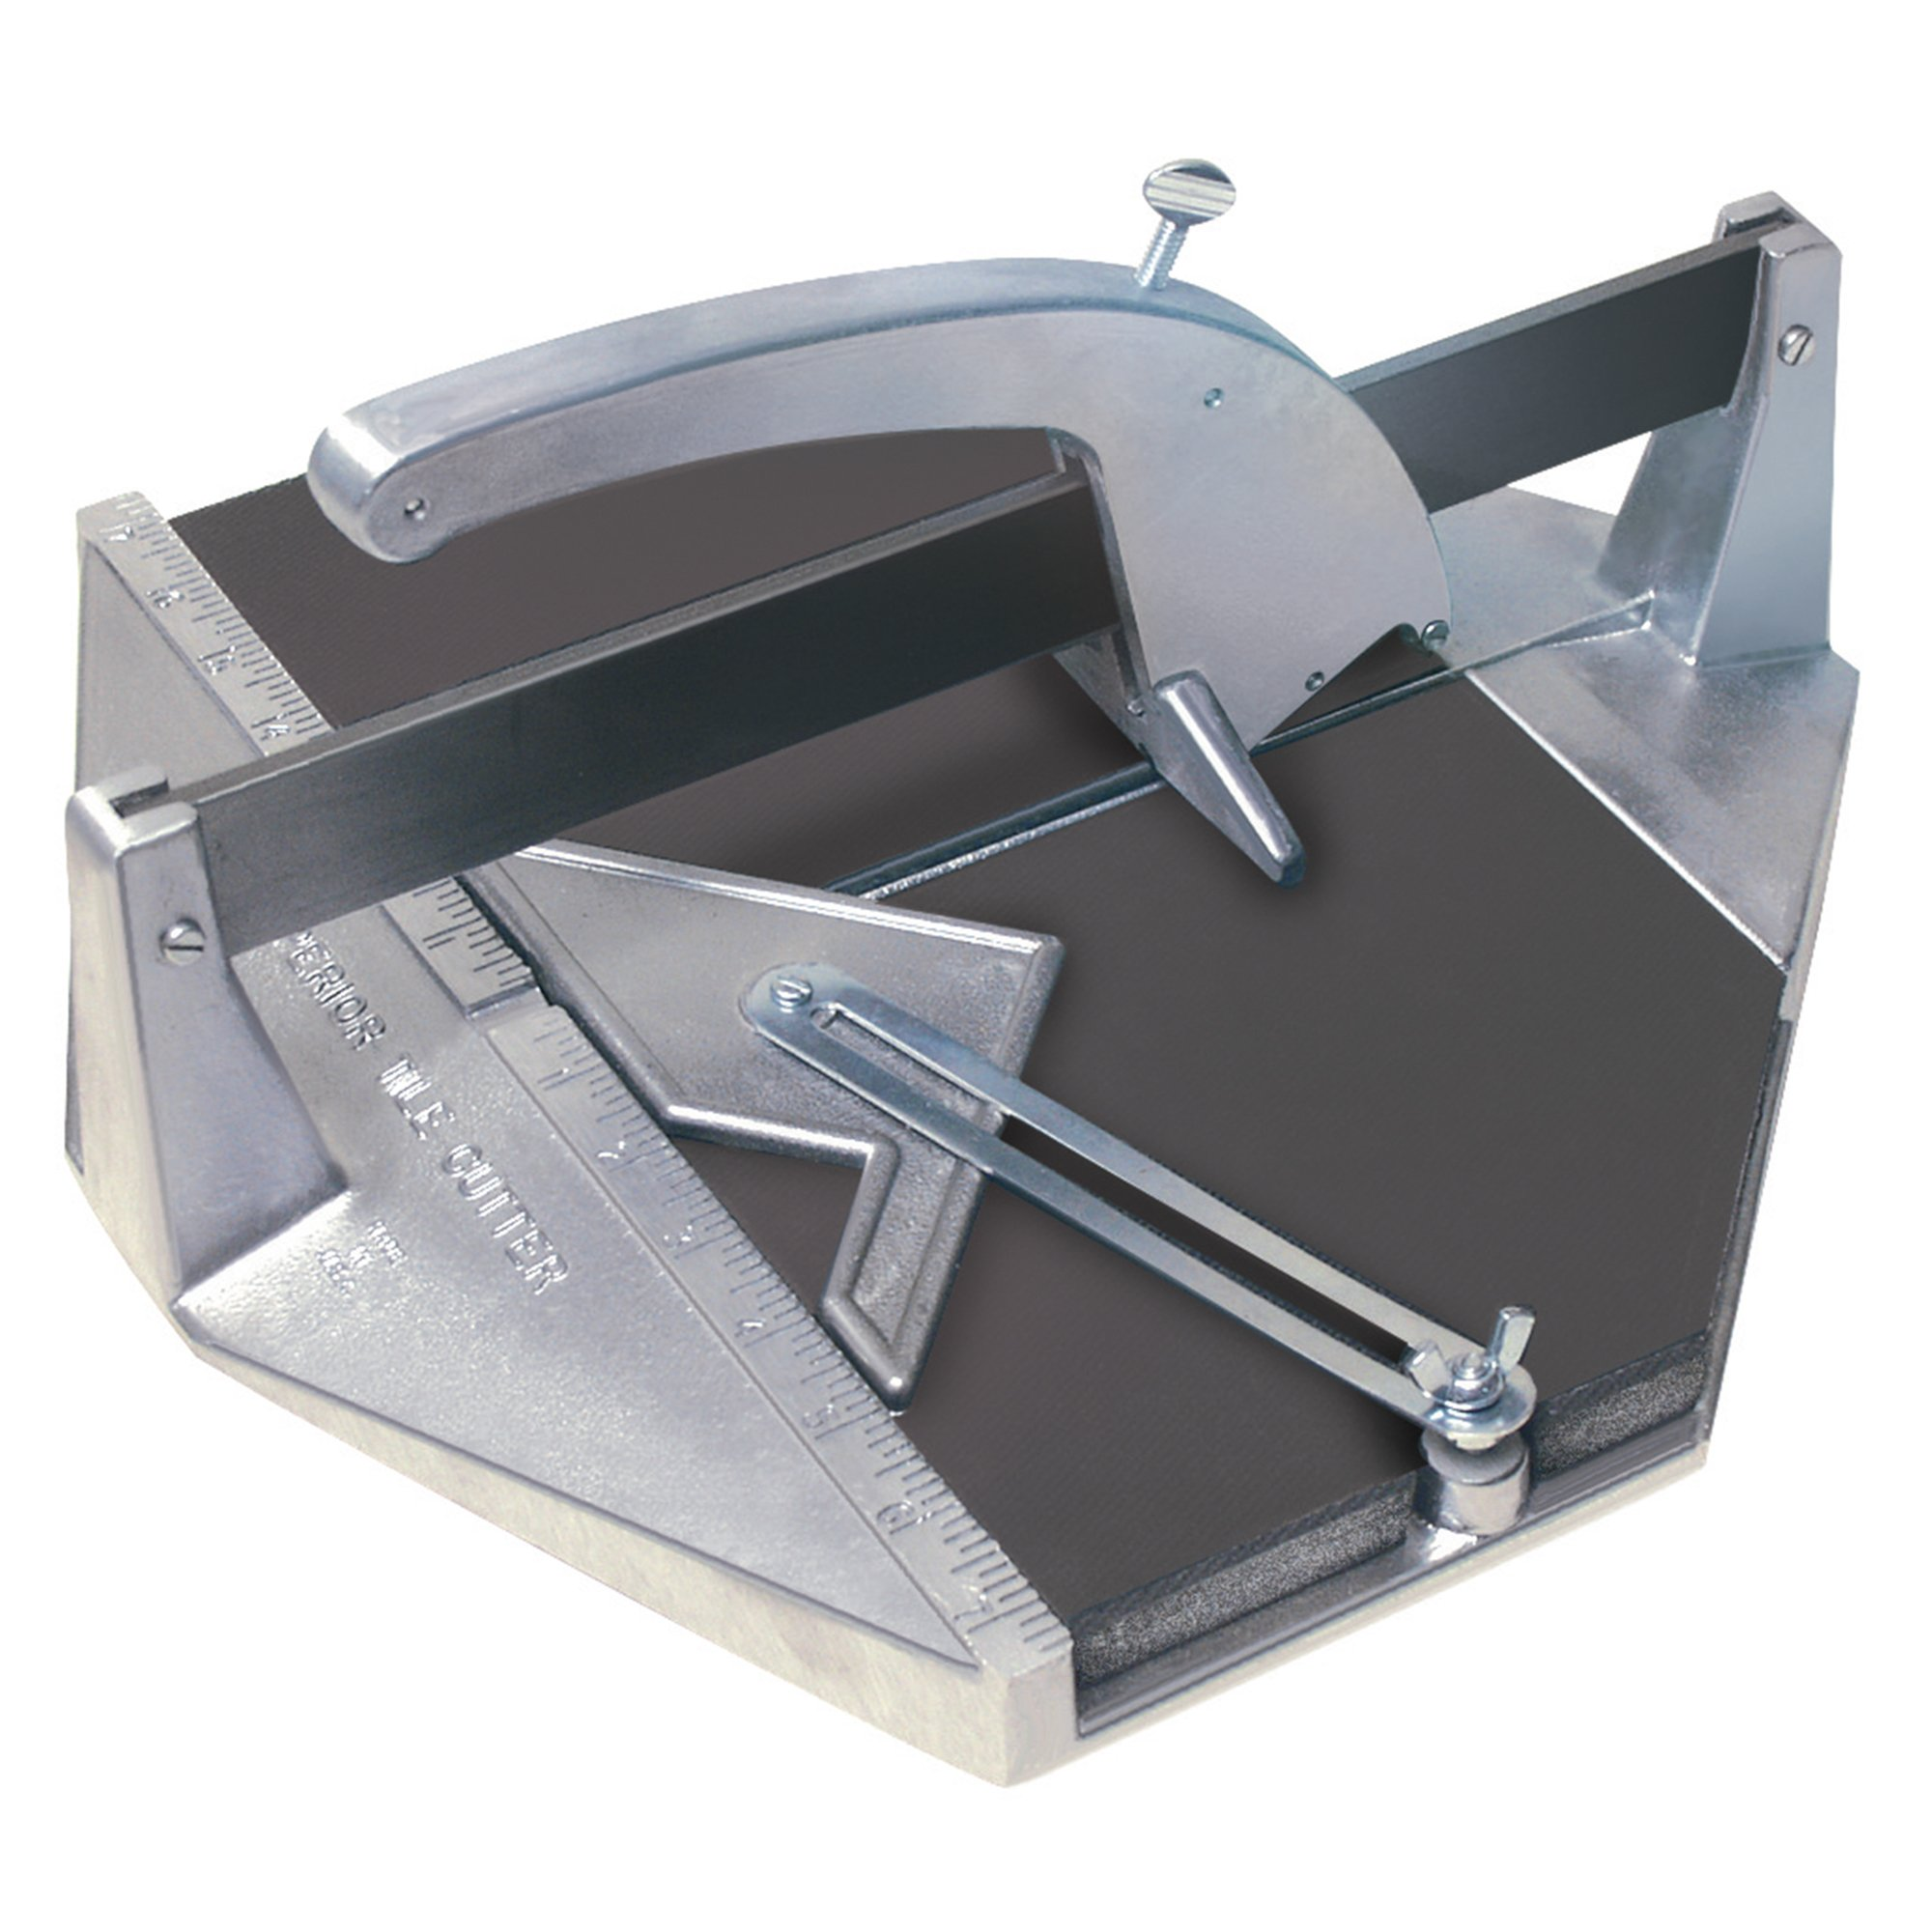 Superior Tile Cutter and Tools ST006 Tile Cutter with Carbide Cutting Wheel, Large by Superior Tile Cutter